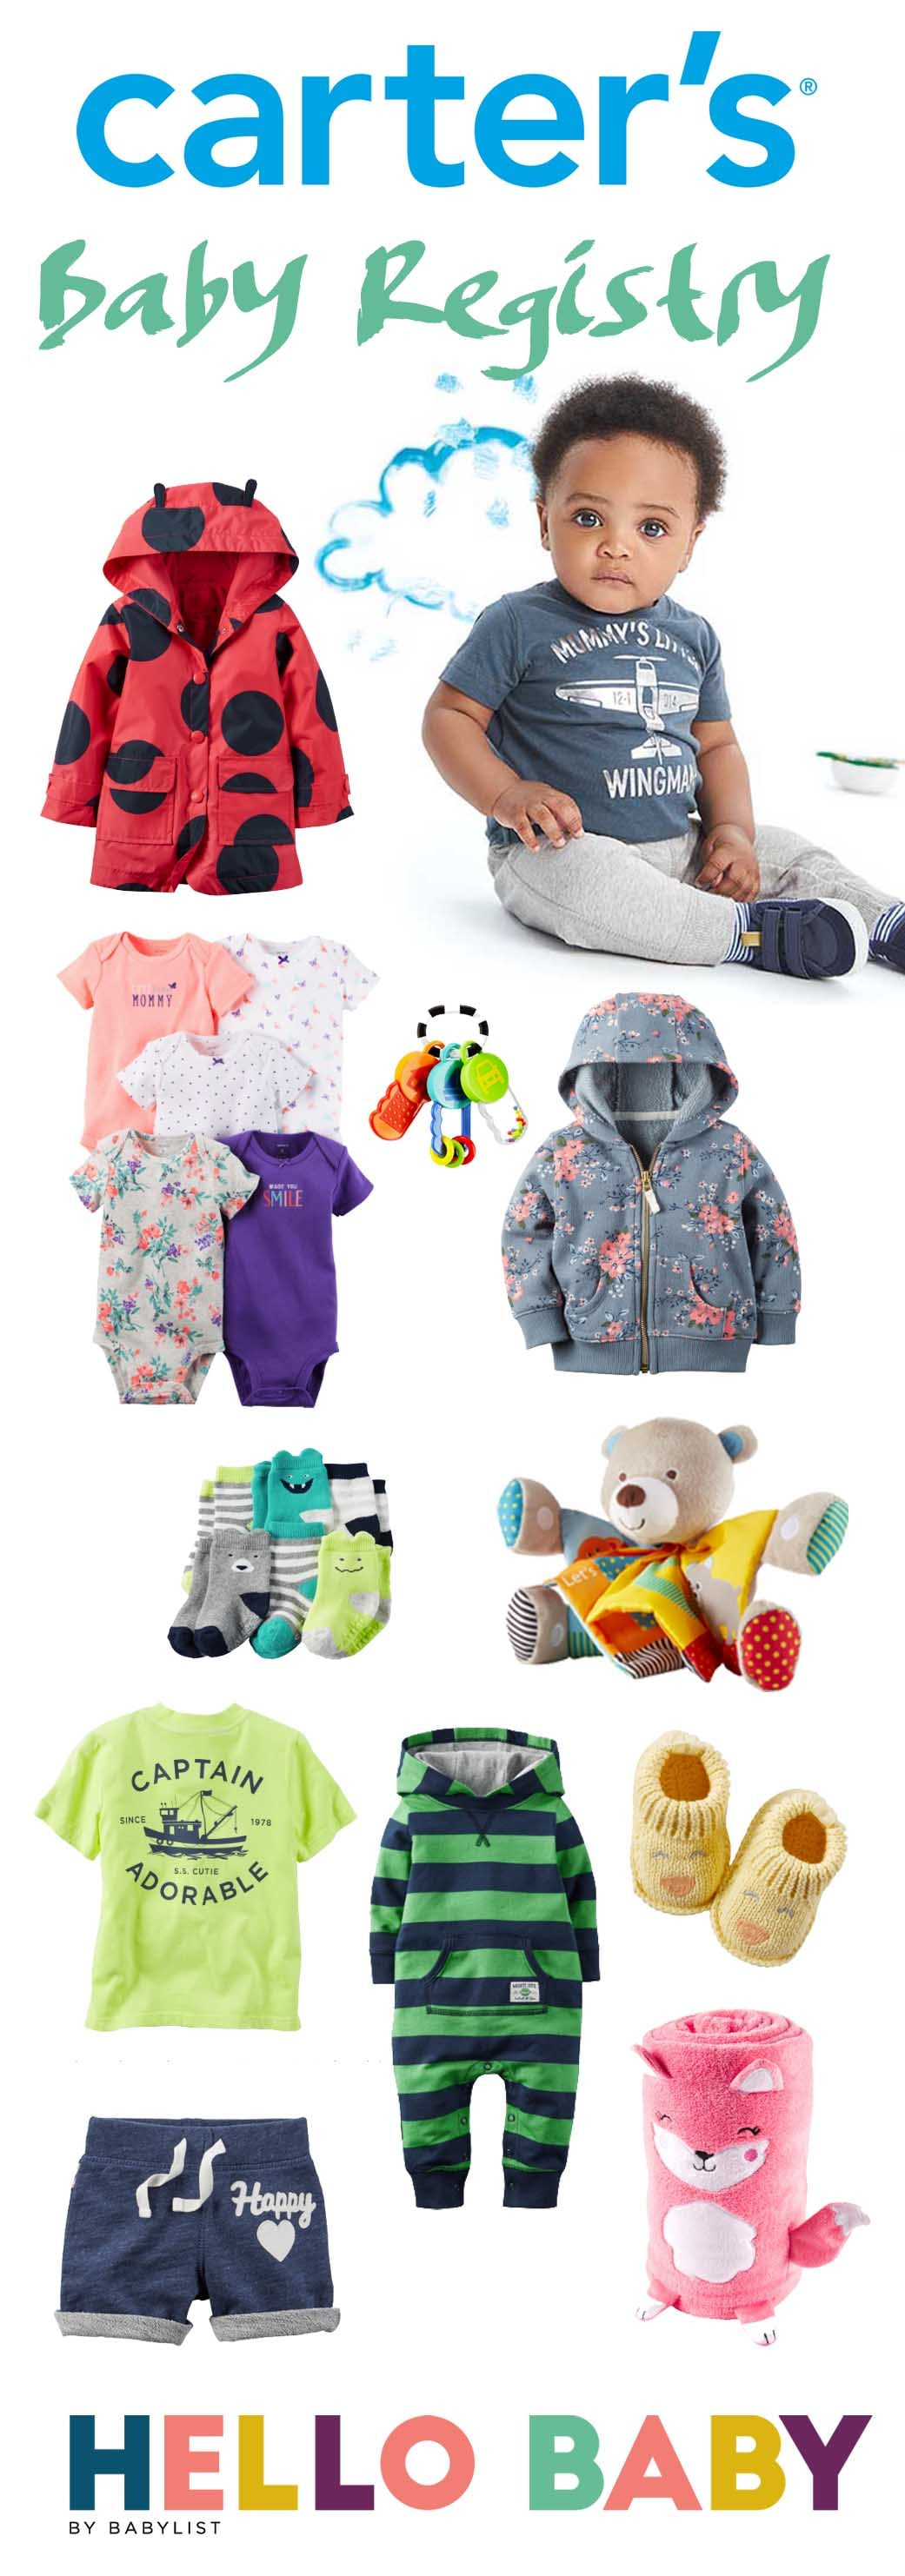 Carter's has cute, affordable and often clever clothing options for your baby registry that will make you smile. Take a look at some of our favorites.